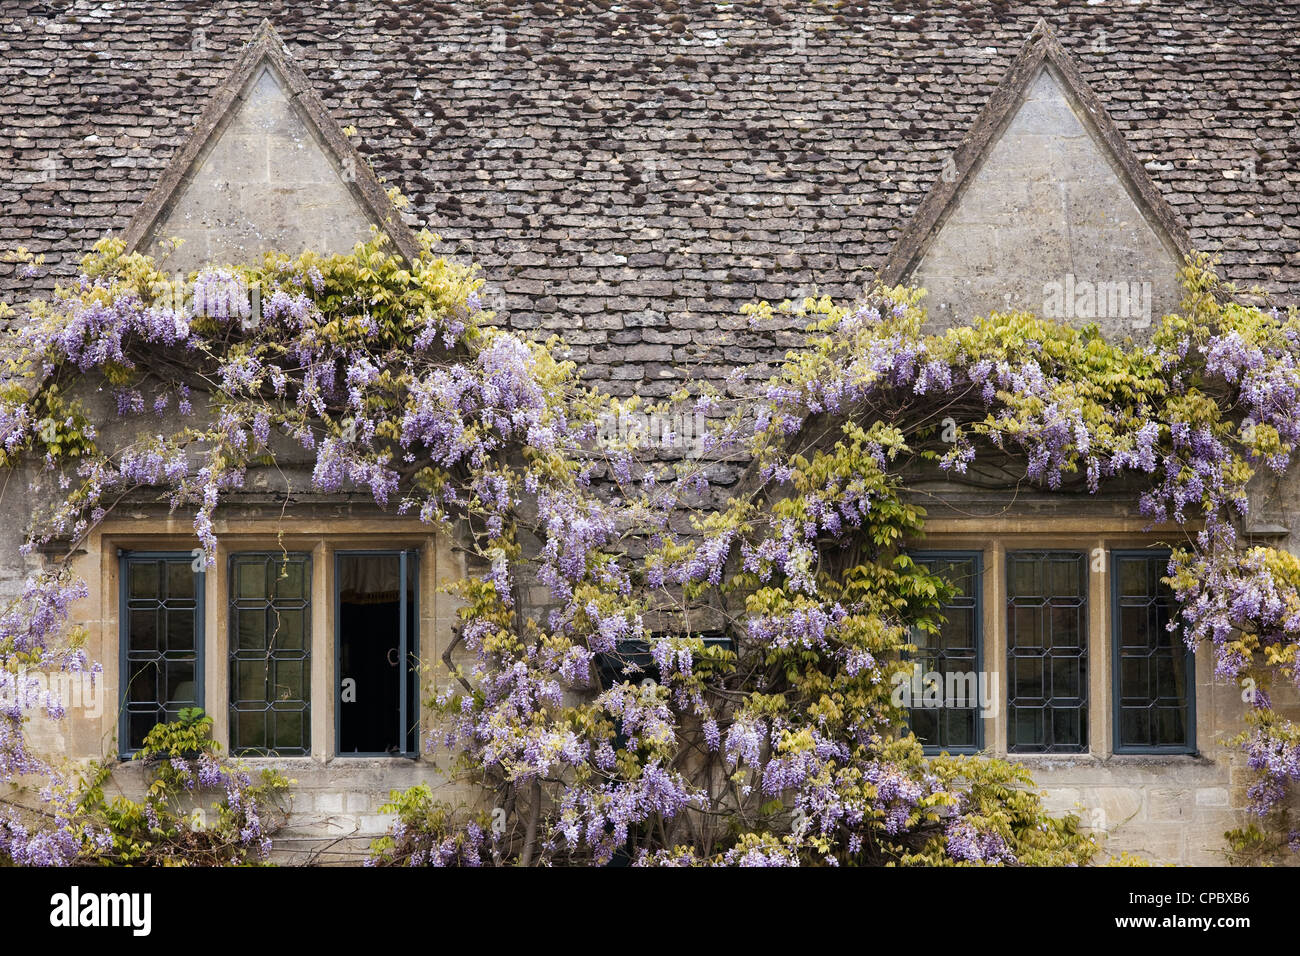 Wisteria surrounding the windows of The Bay Tree Hotel in the Cotswold town of Burford. - Stock Image